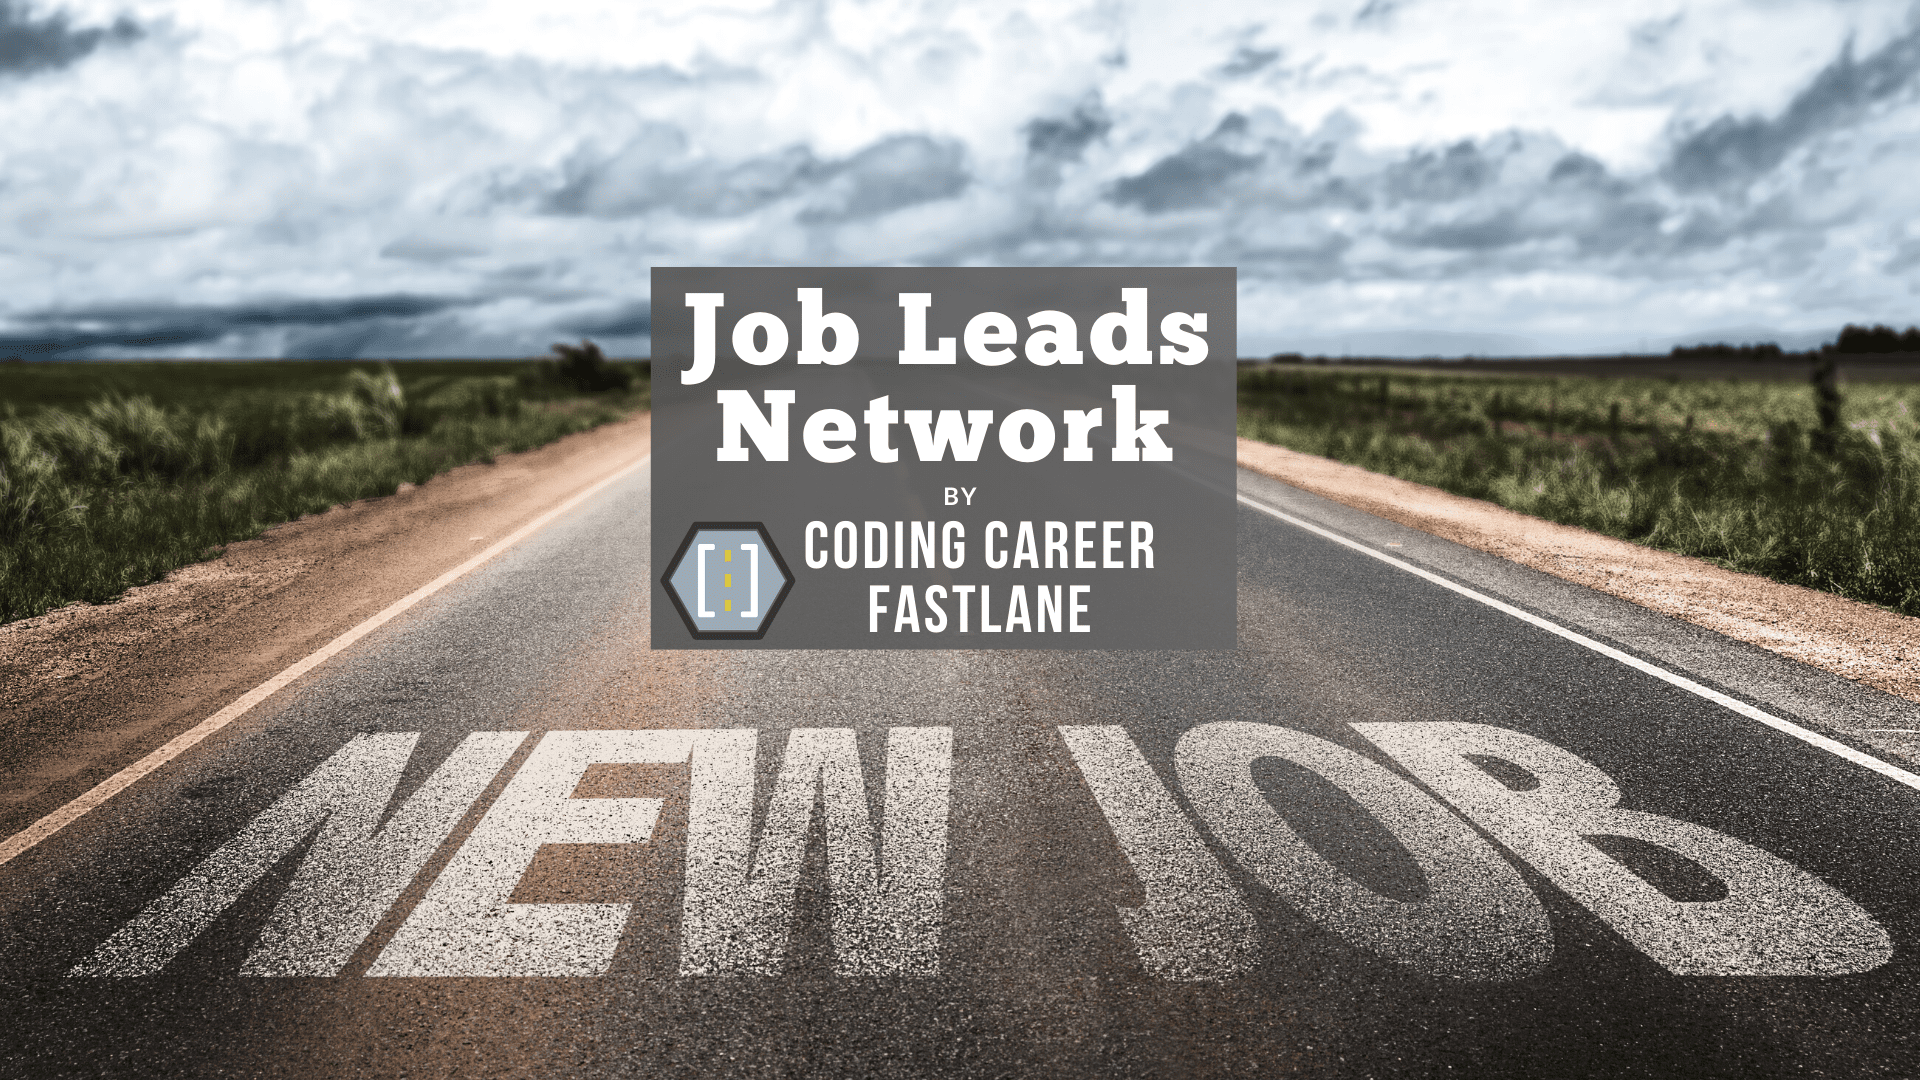 Job Leads Network